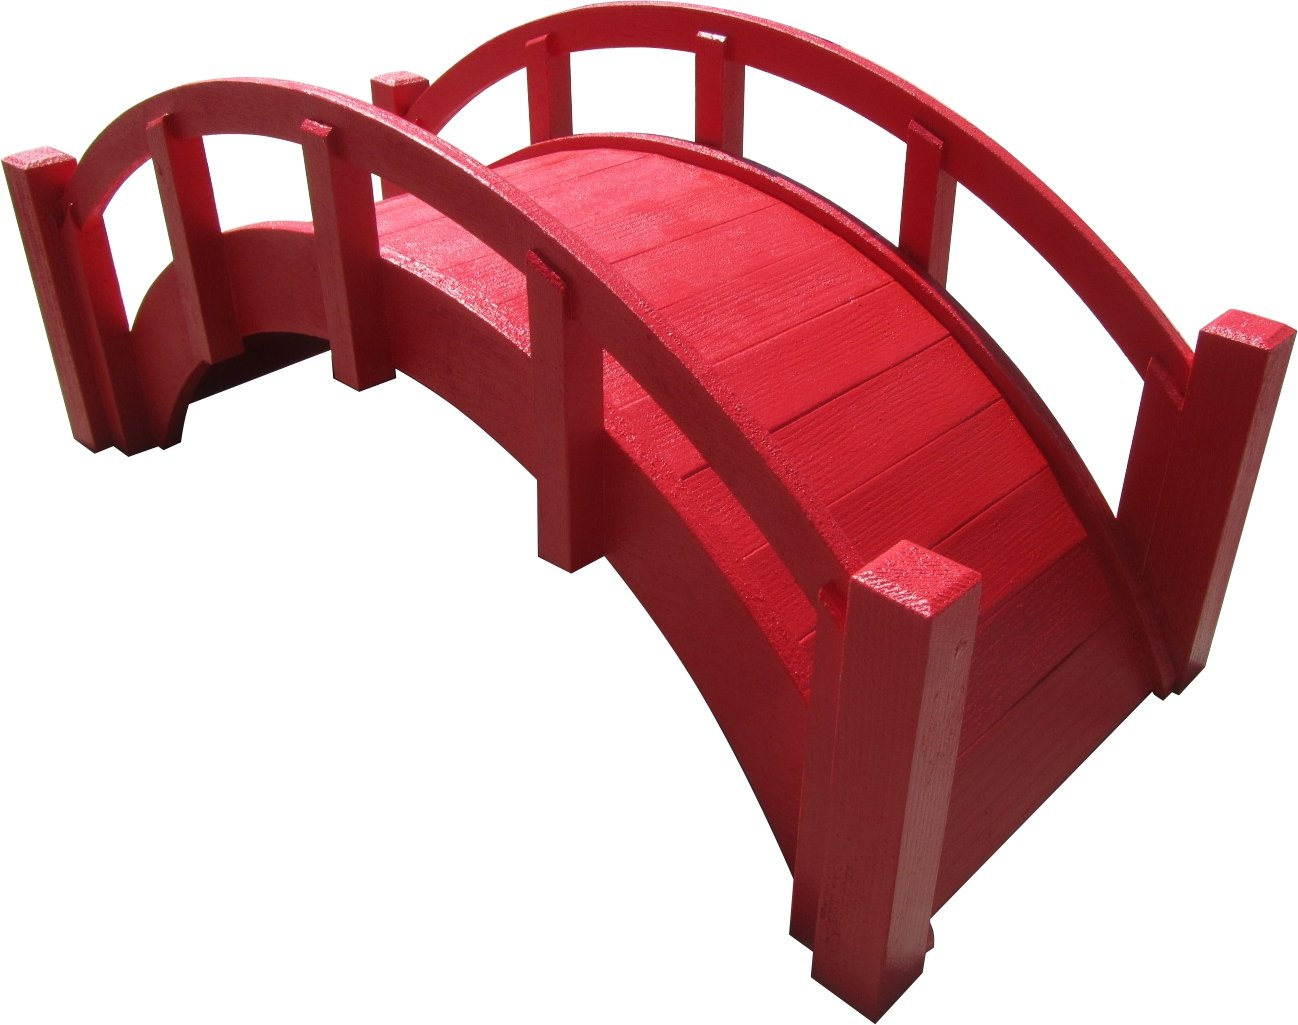 SamsGazebos Miniature Japanese Wood Garden Bridge, Red, Assembled, 25'' Long X 11'' Tall X 11-1/2'' Wide, Made in USA